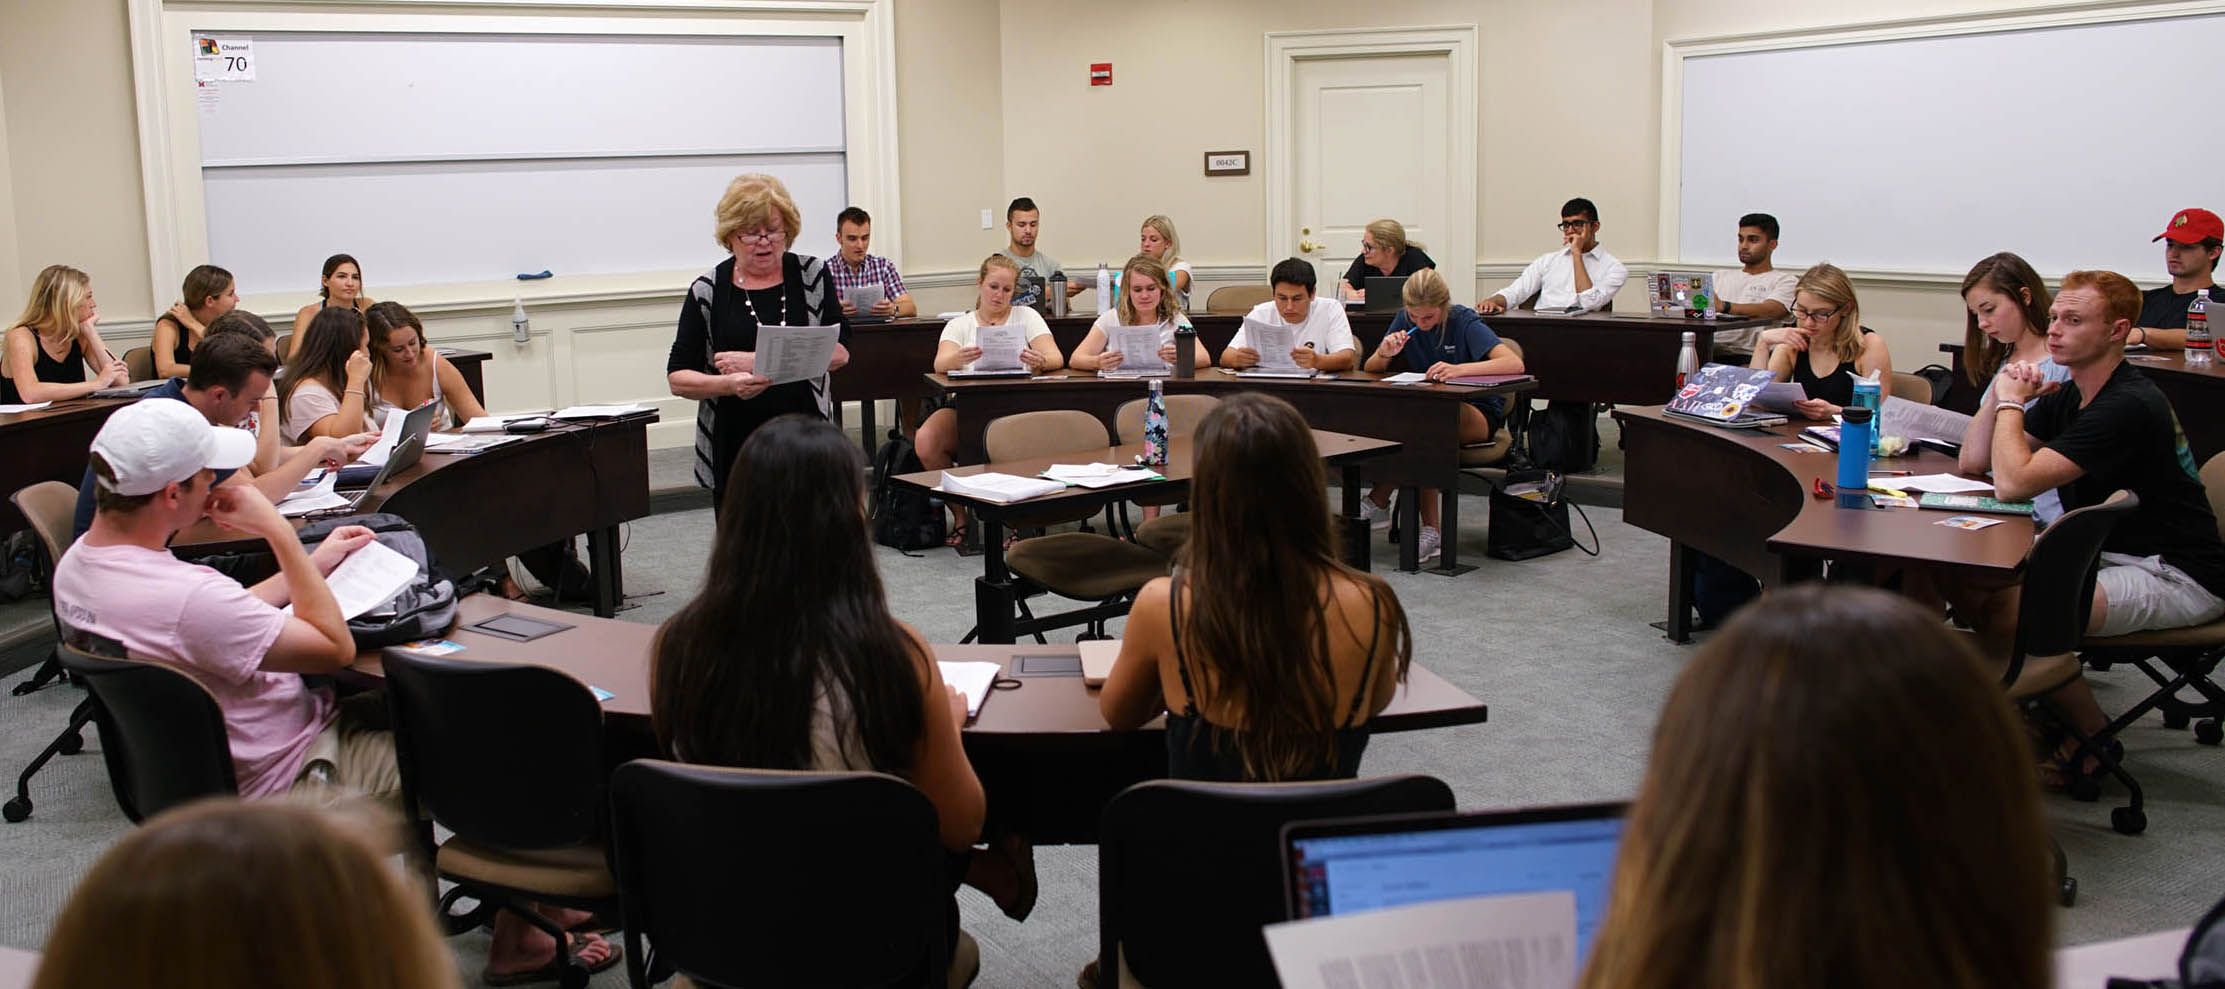 Jan Taylor instructs students about marketing